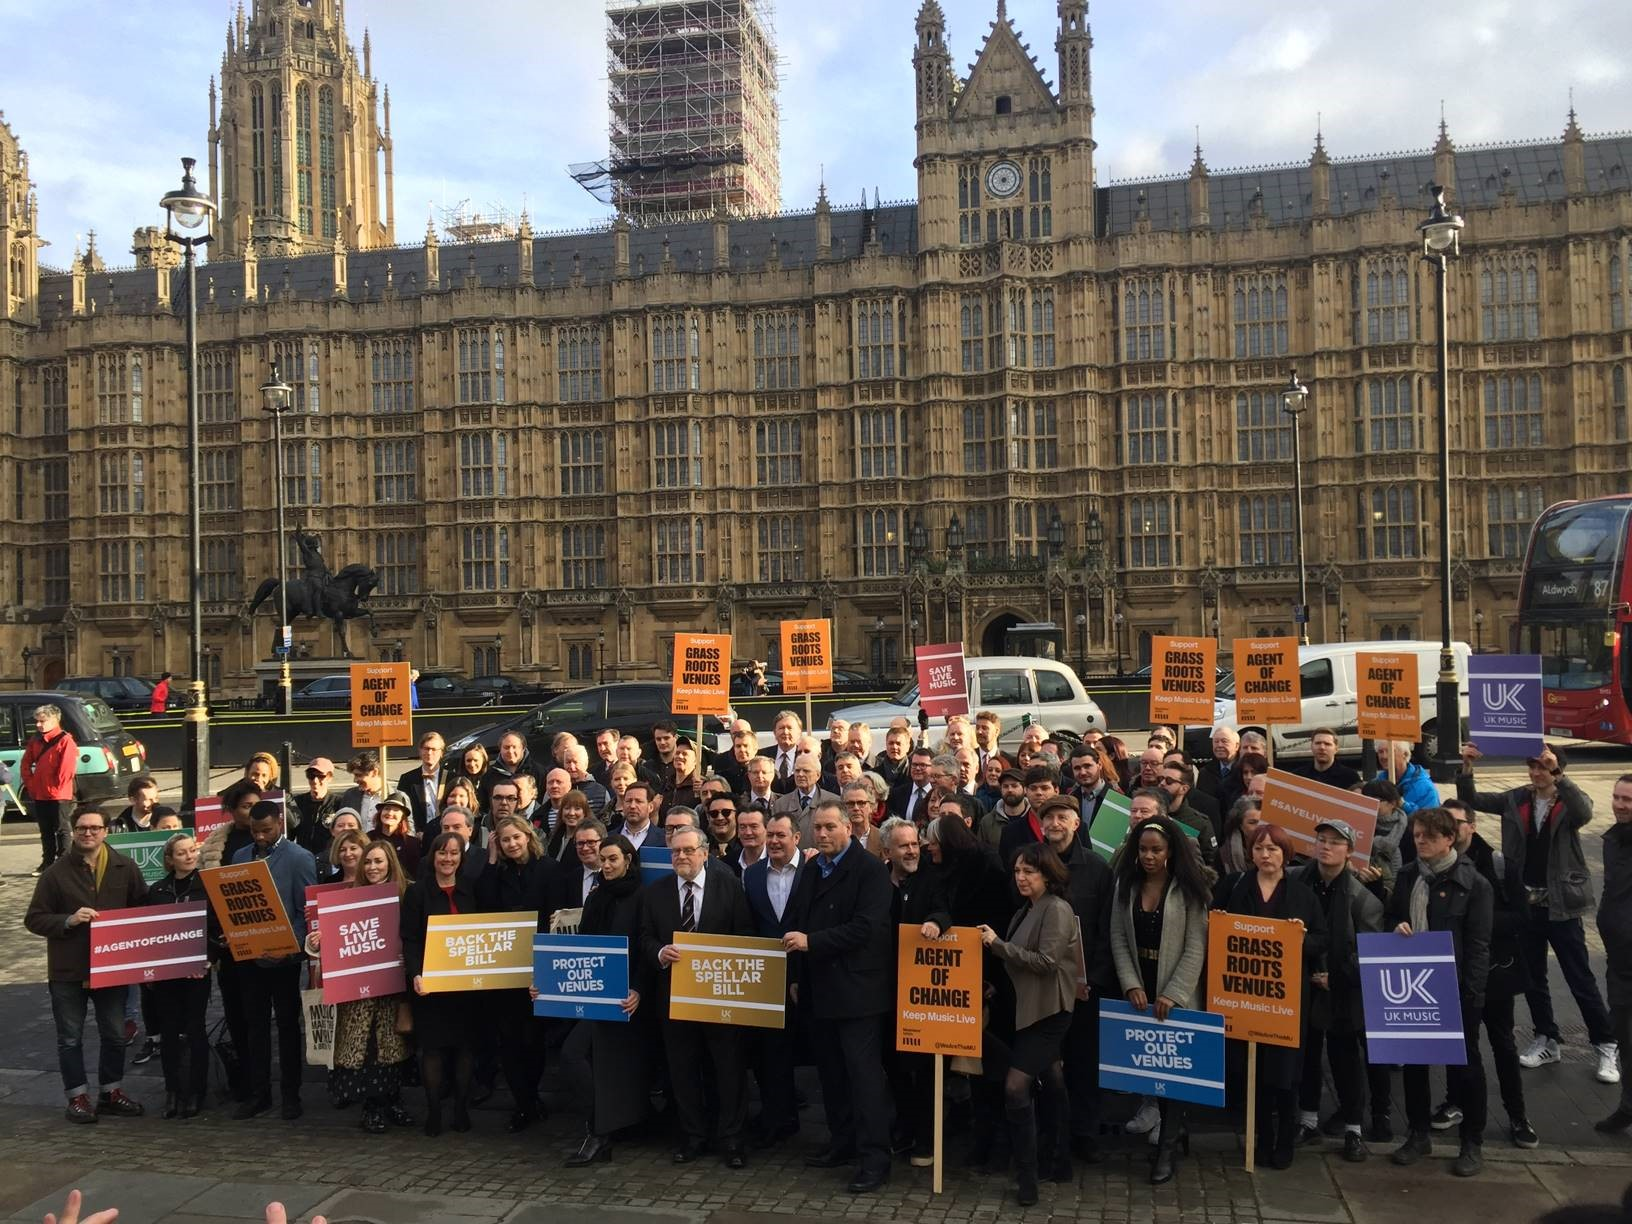 campaigners gathered outside the Houses of Parliament